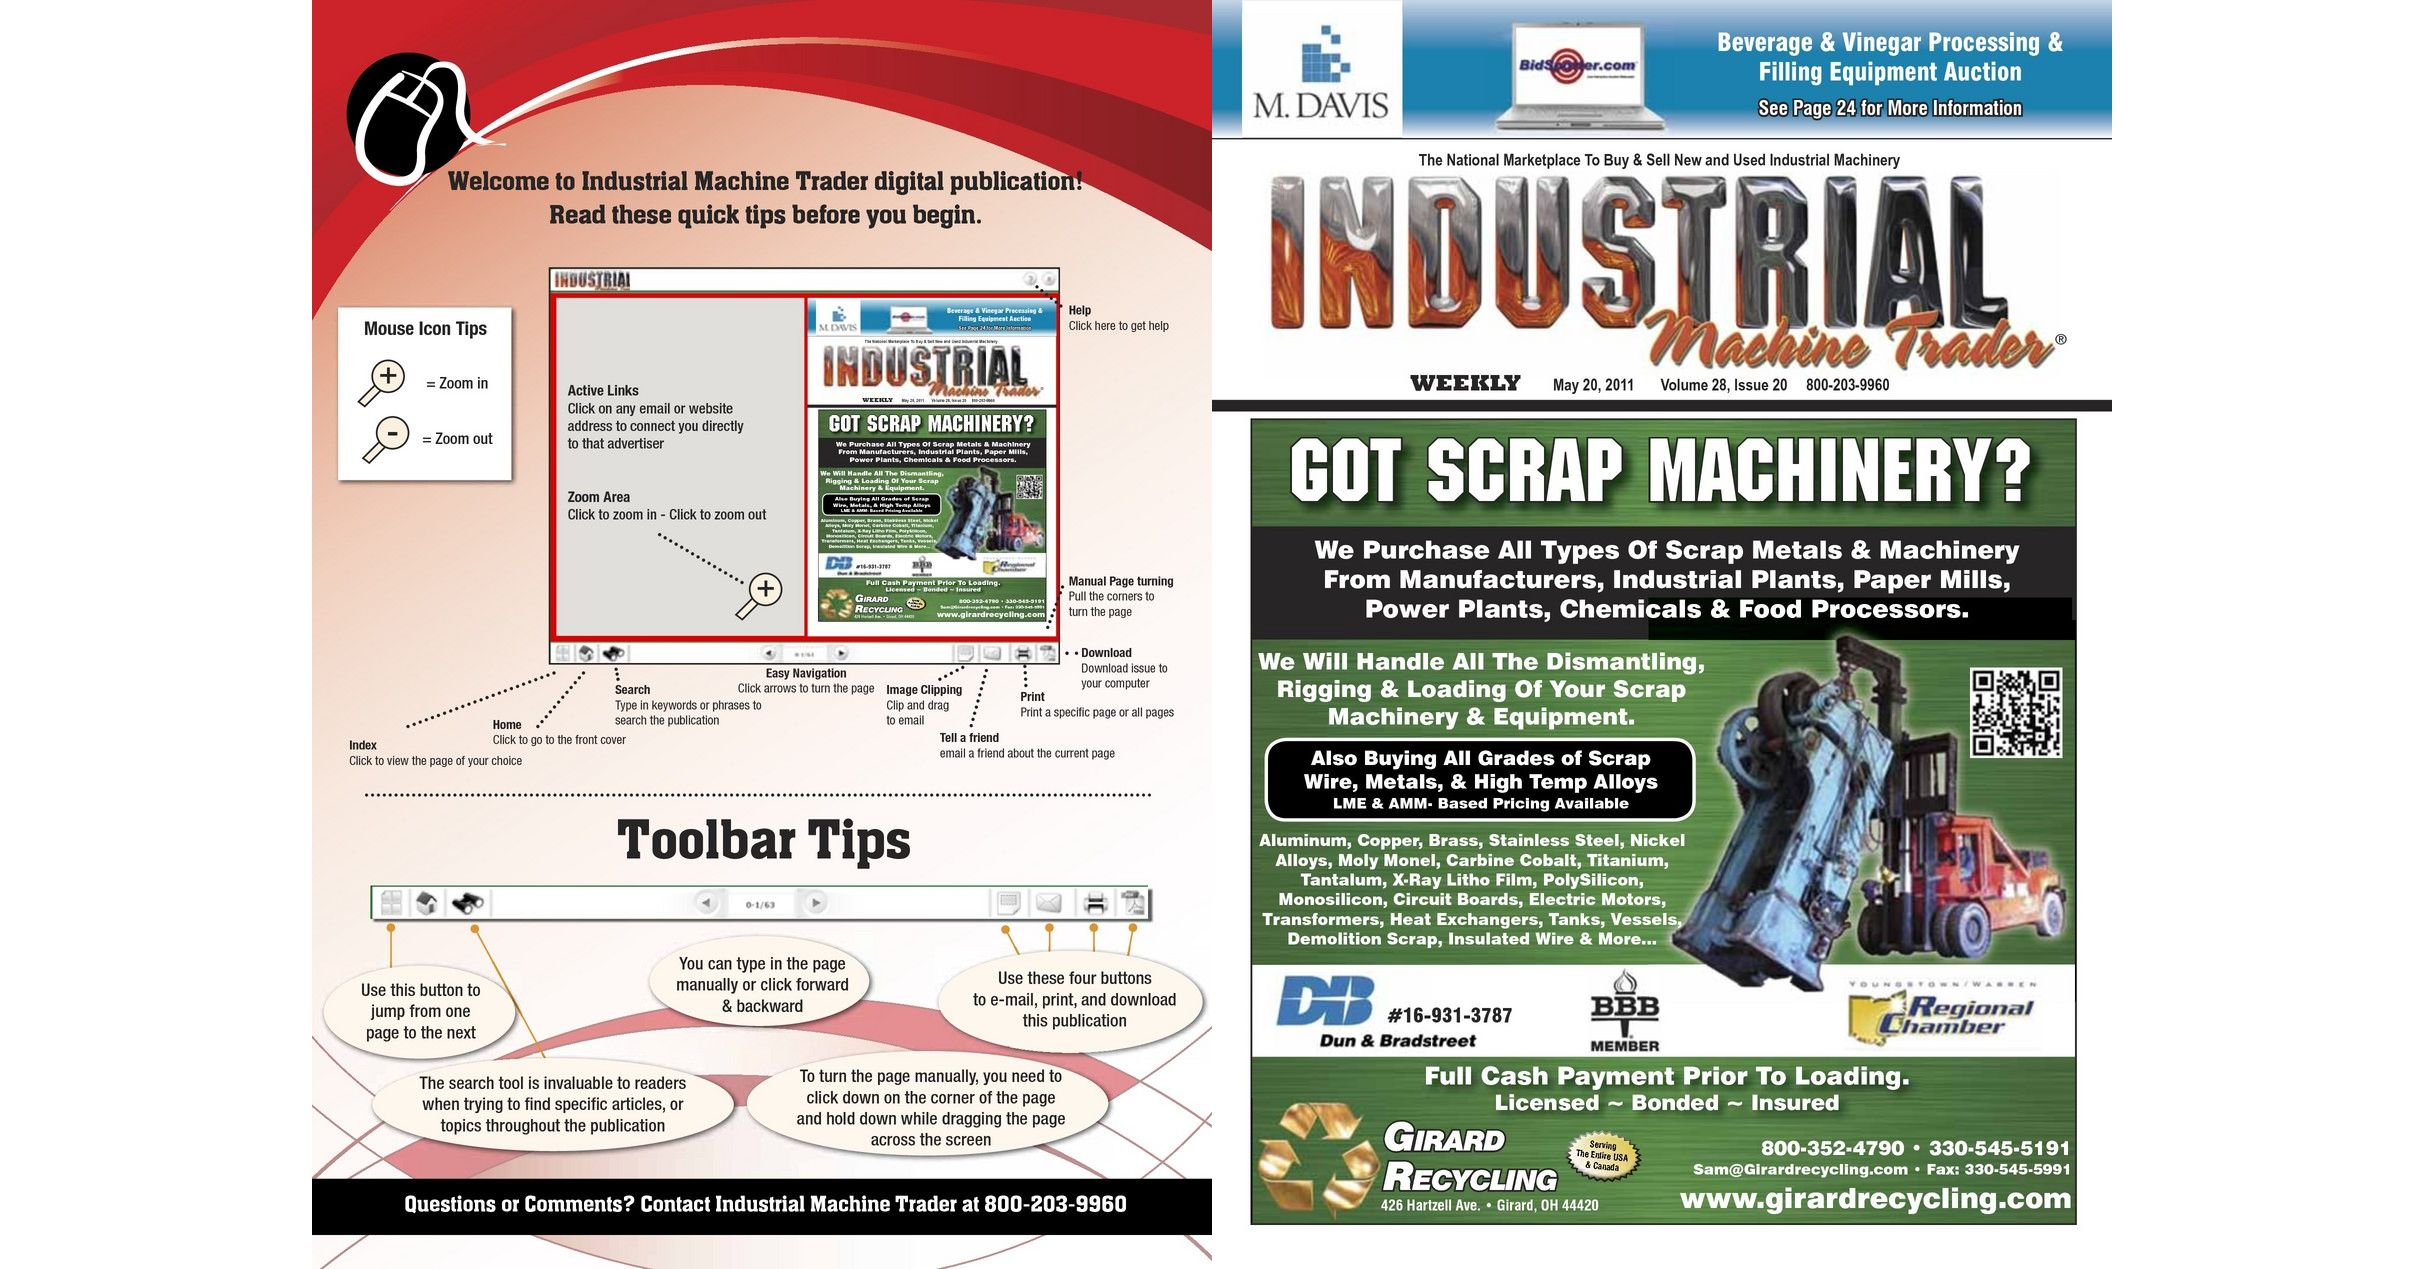 Industrial Machine Trader May 20 2011 Molded Circuit Board Recycling Equipment Buy